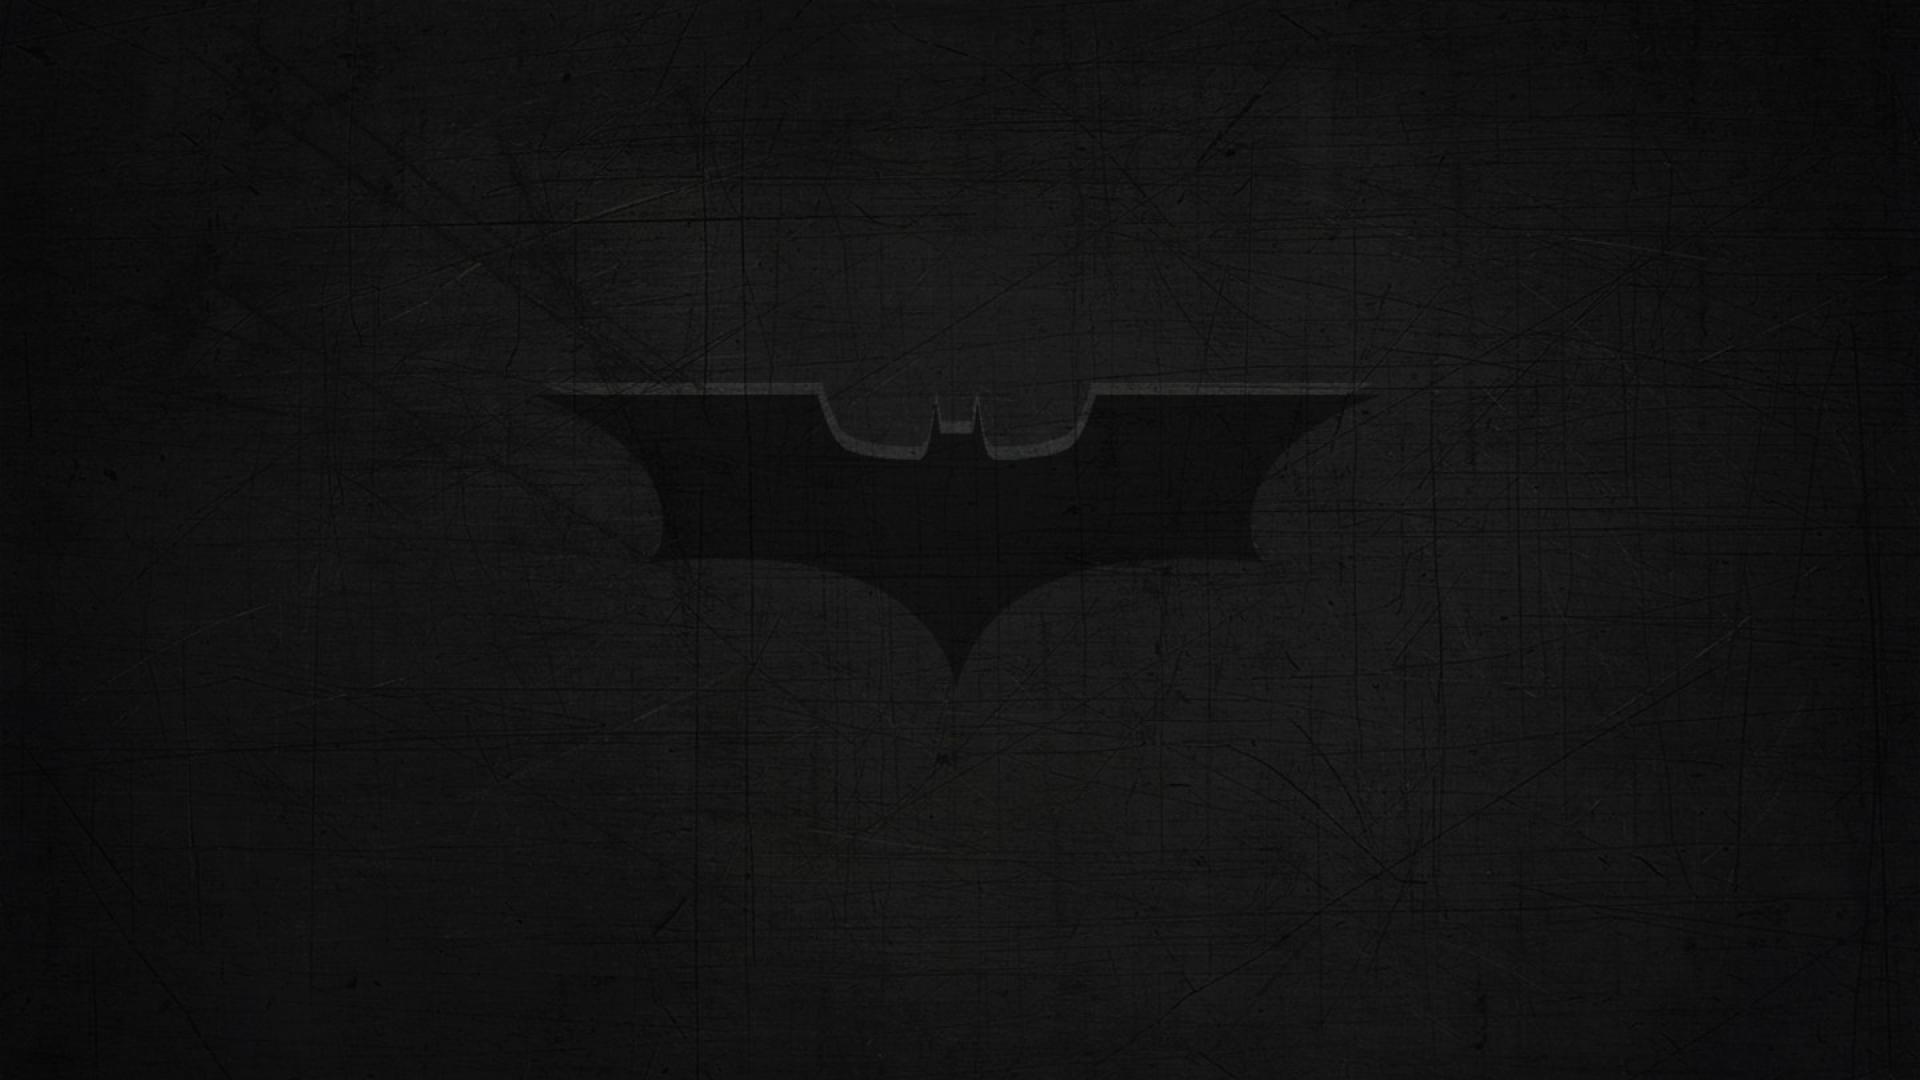 Dark Knight Logo Wallpaper Wallpapersafari